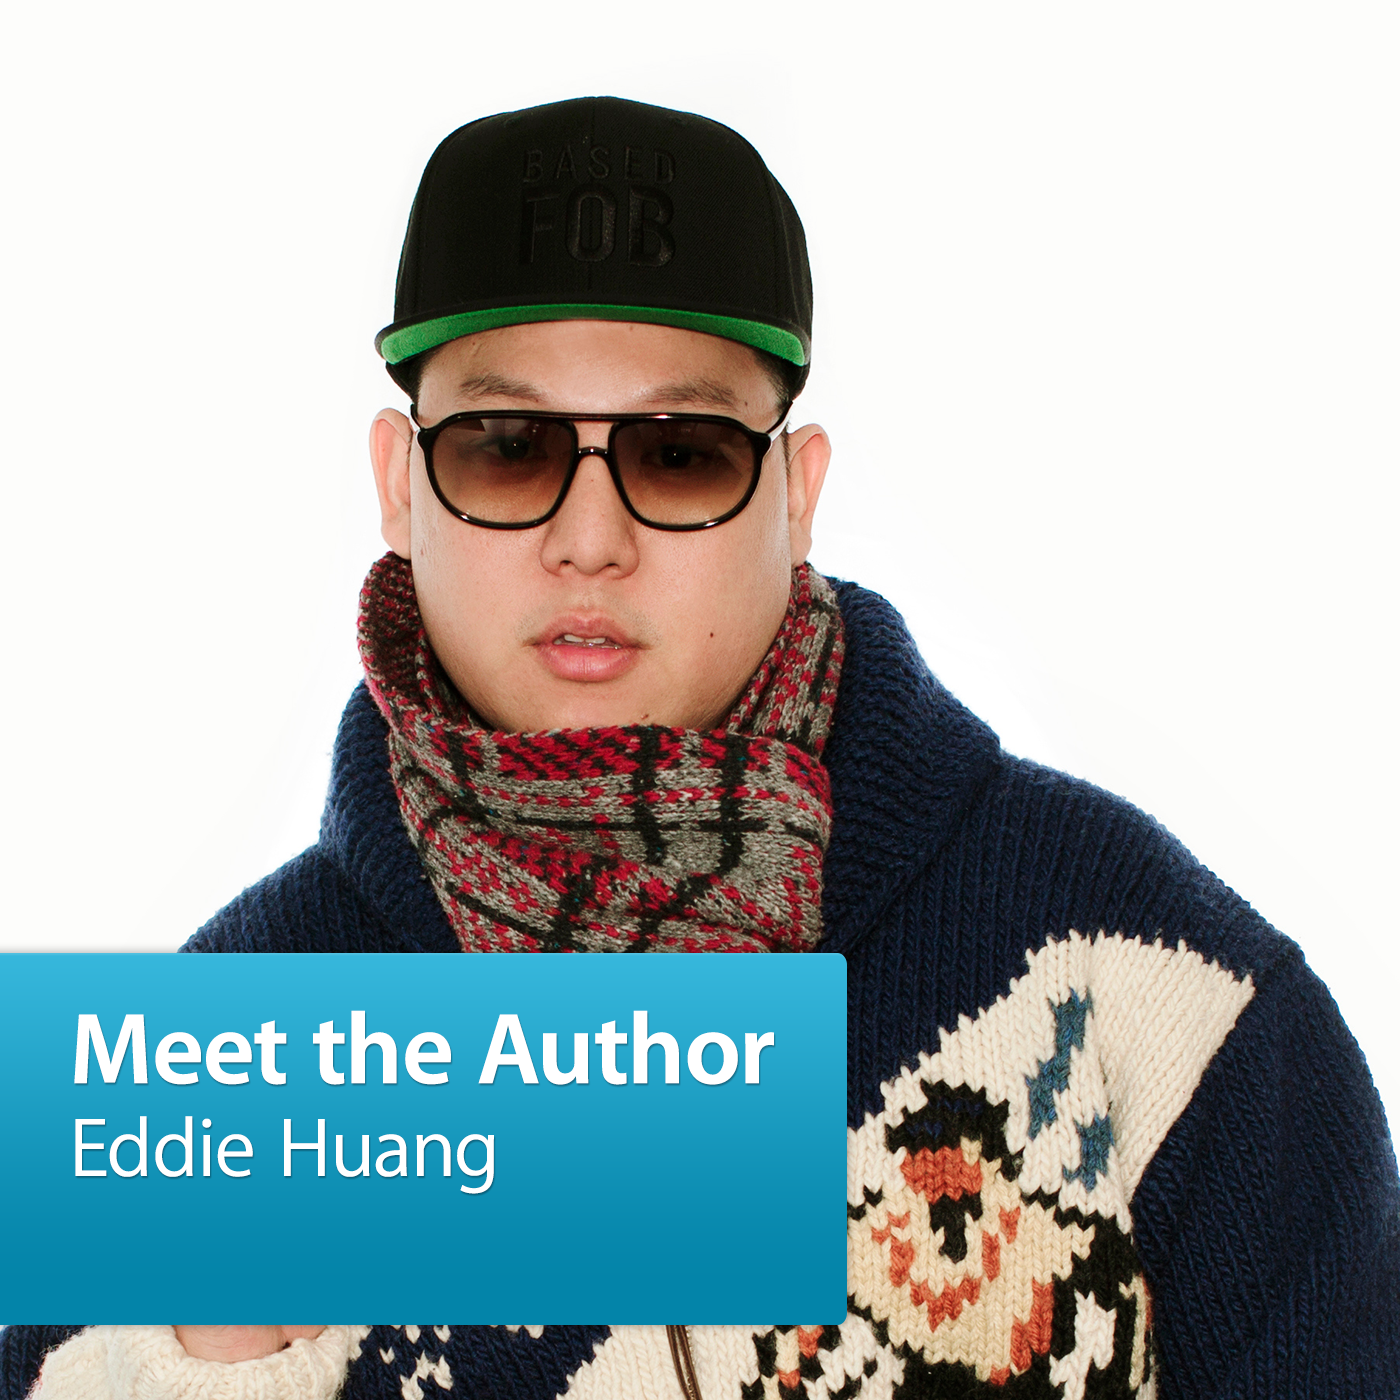 Eddie Huang: Meet the Author